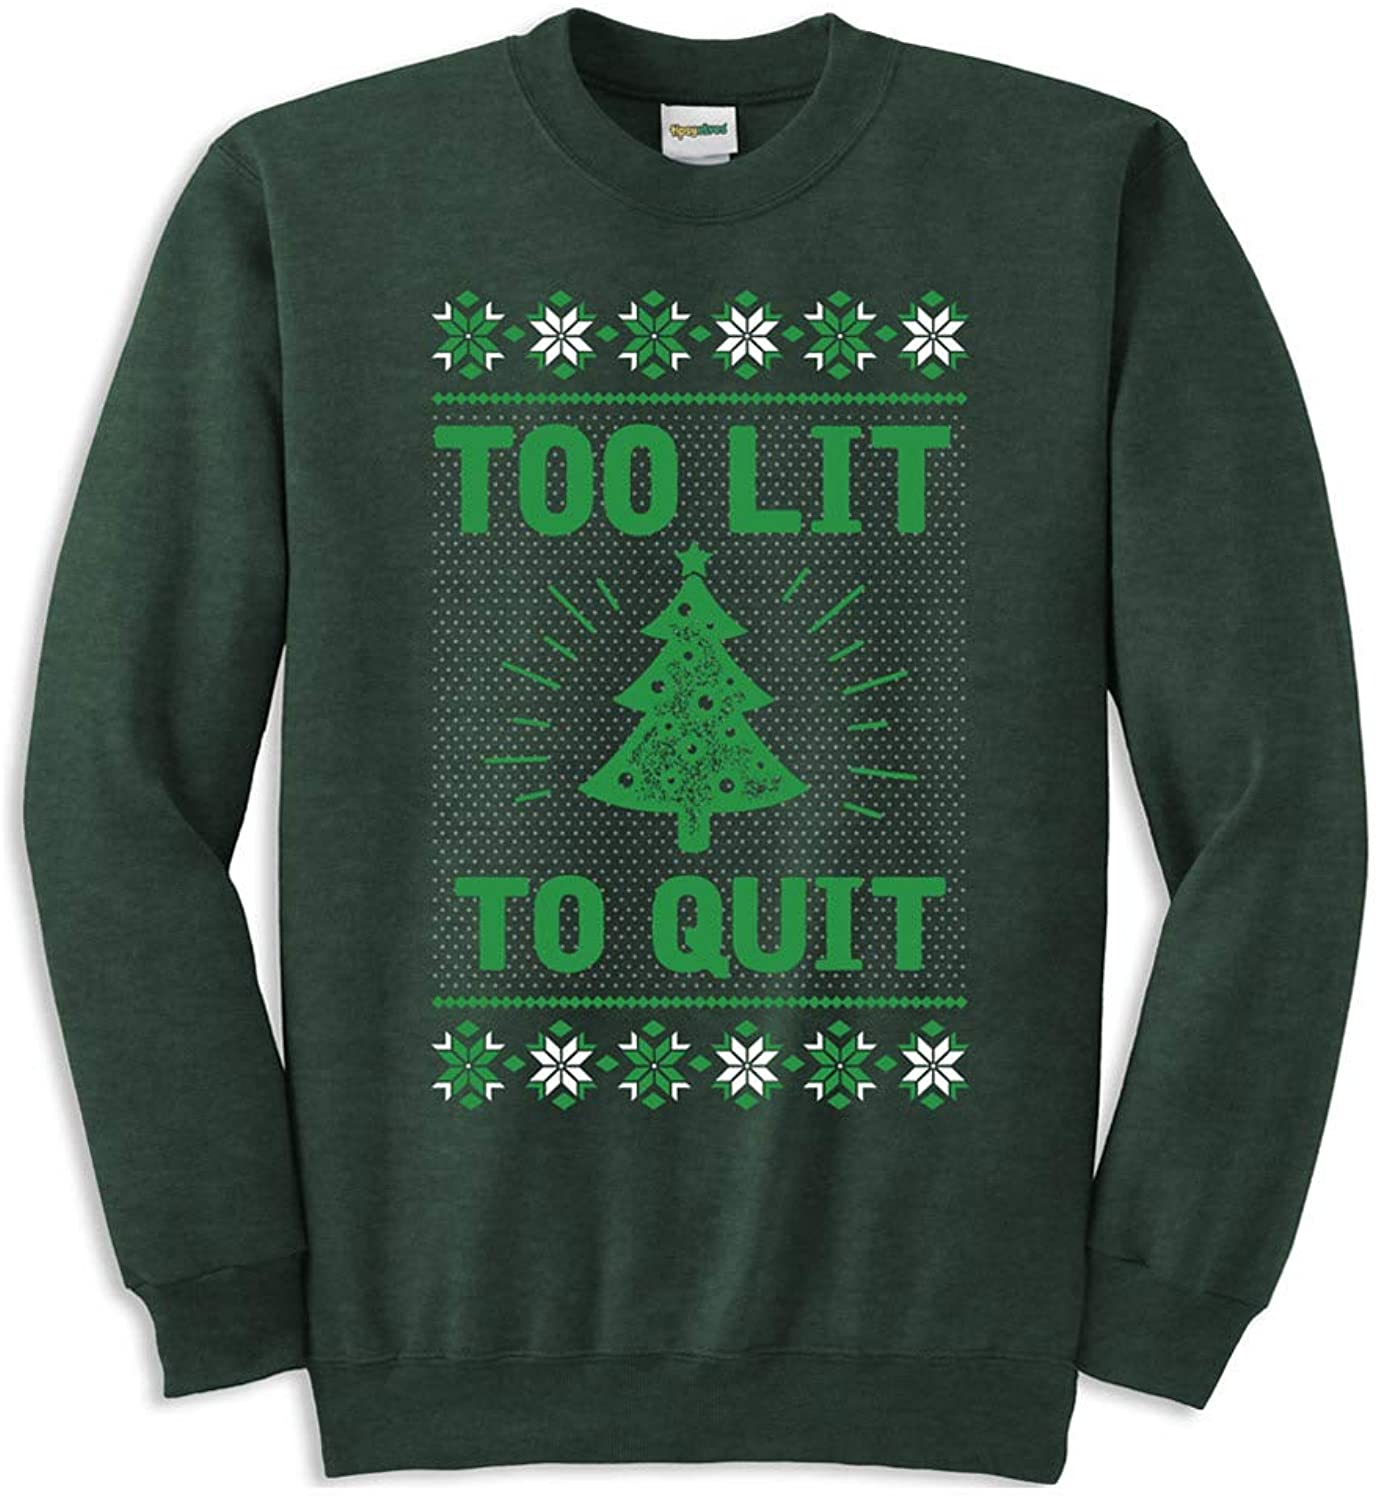 Tipsy Elves Men's Too Lit Ugly Christmas Sweatshirt - Green Funny Ugly Christmas Sweater Male